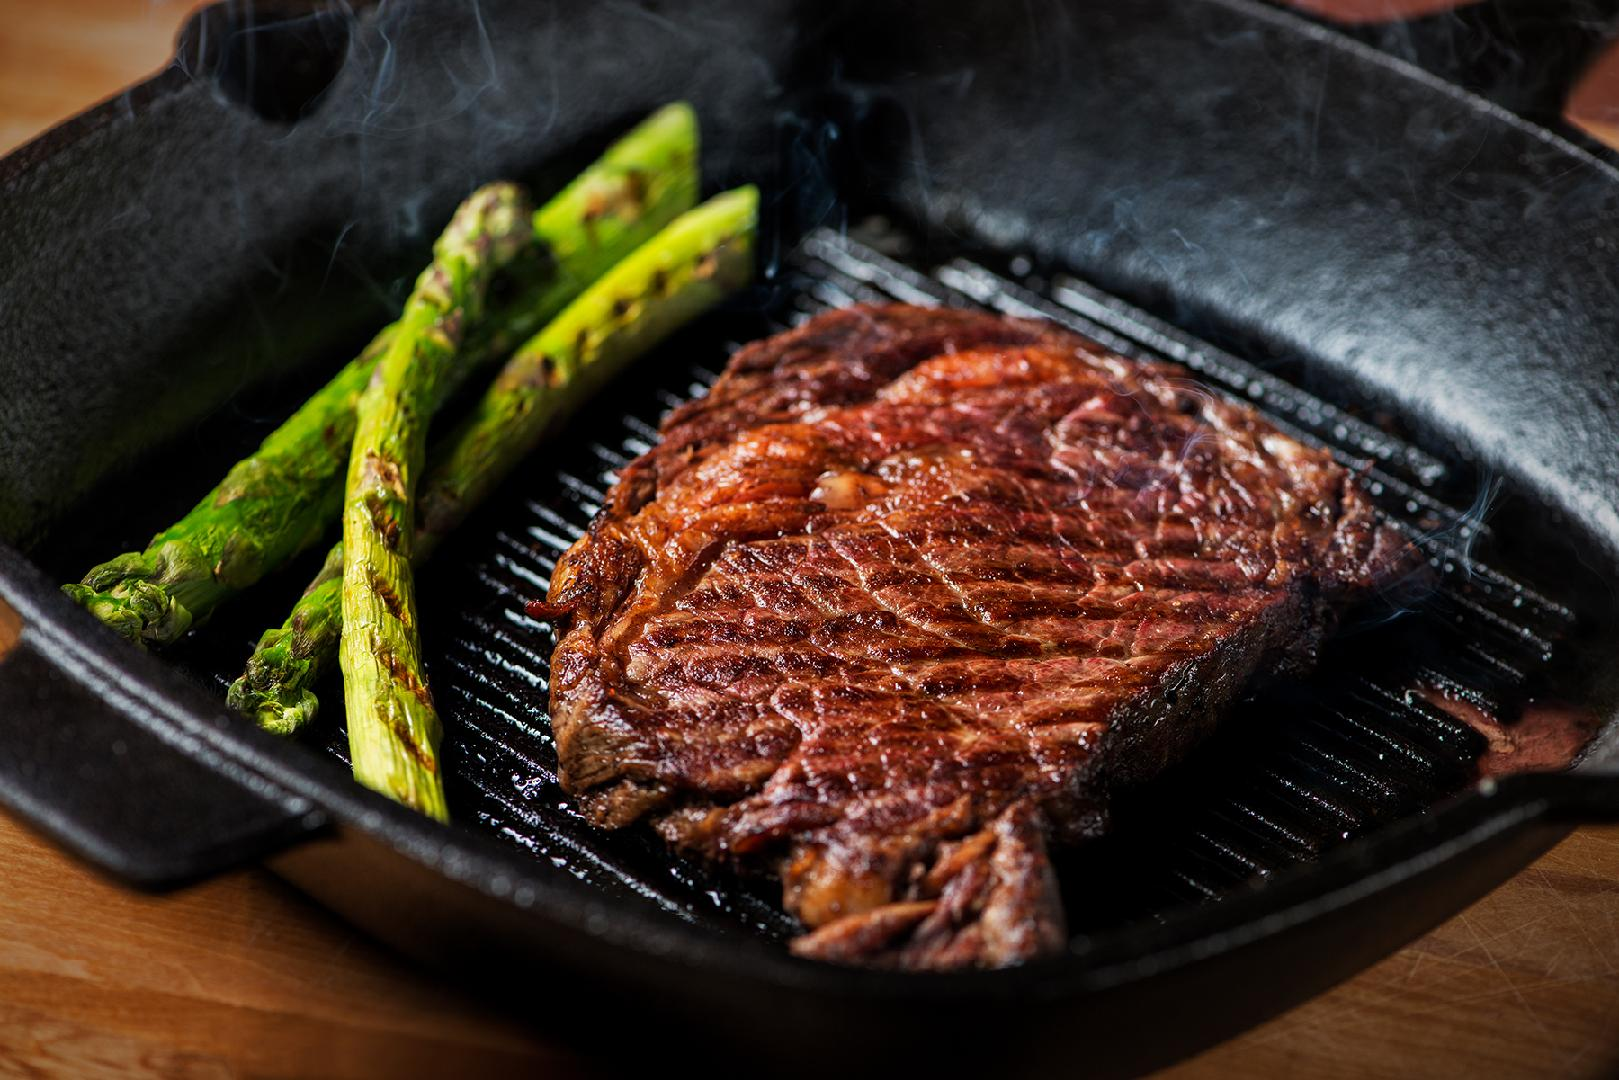 Follow These 7 Tips for Cooking Restaurant-Quality Pan Seared Steak